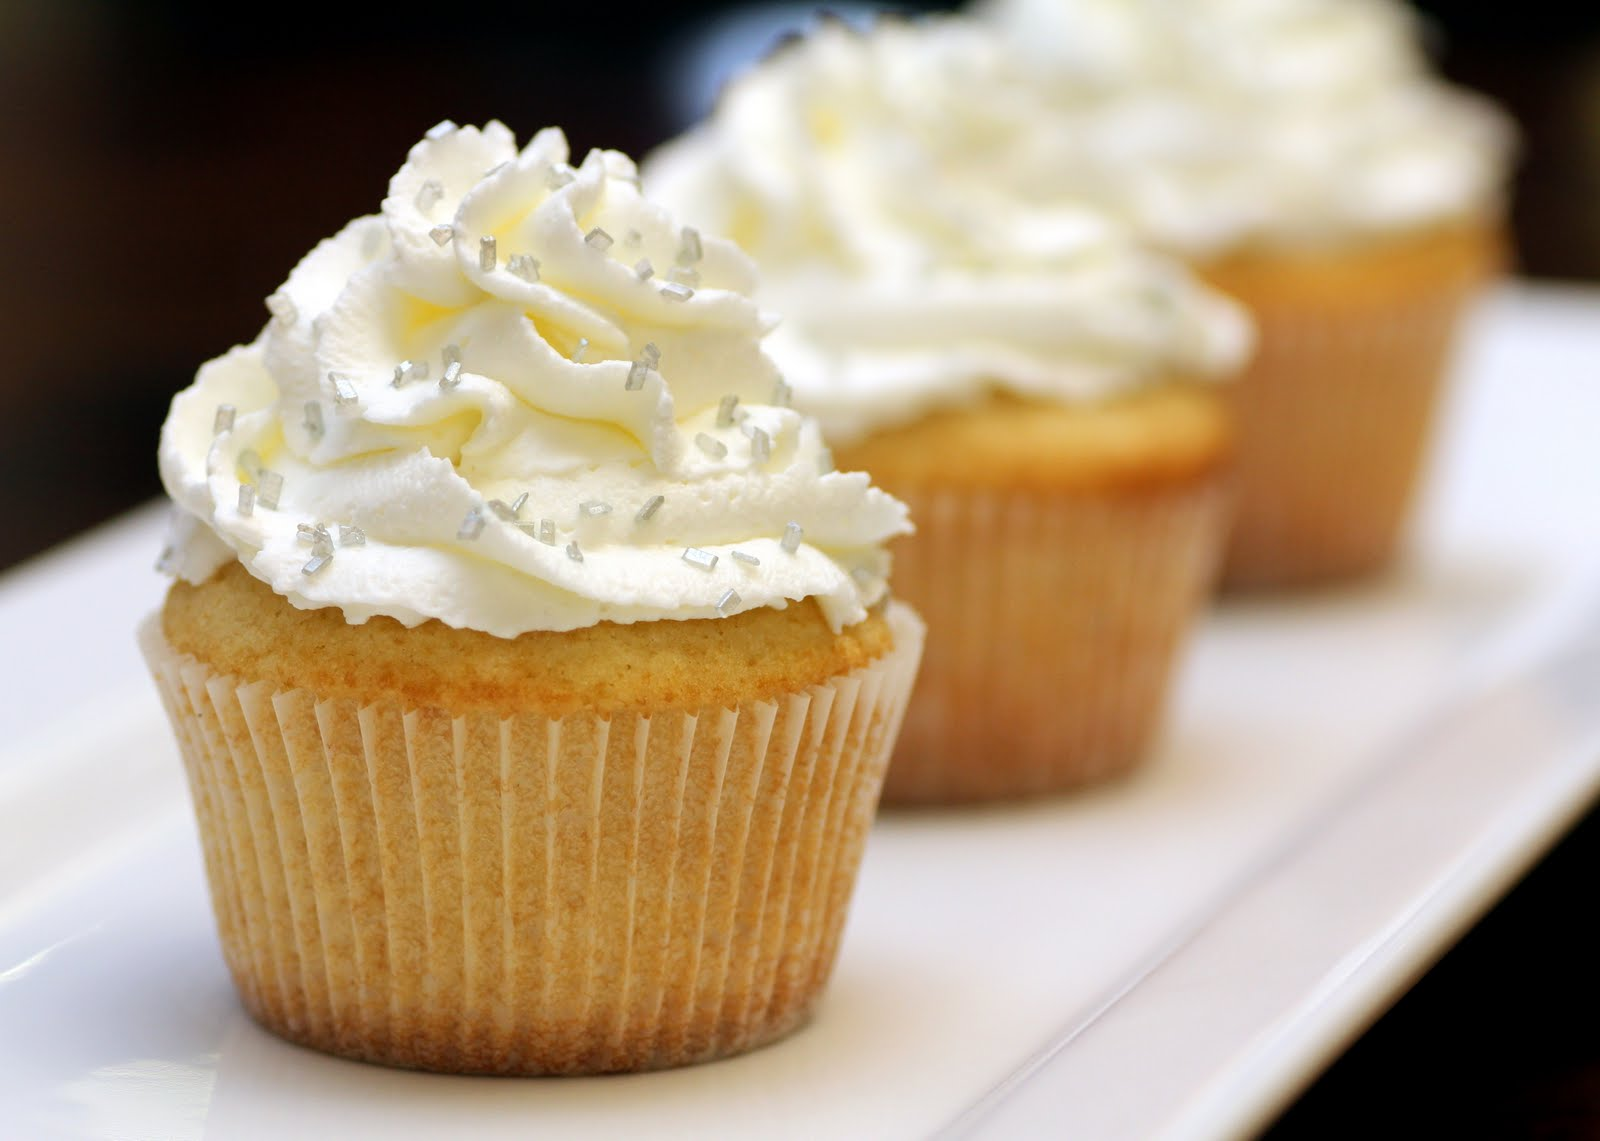 Vanilla Cupcakes with Whipped Cream Frosting